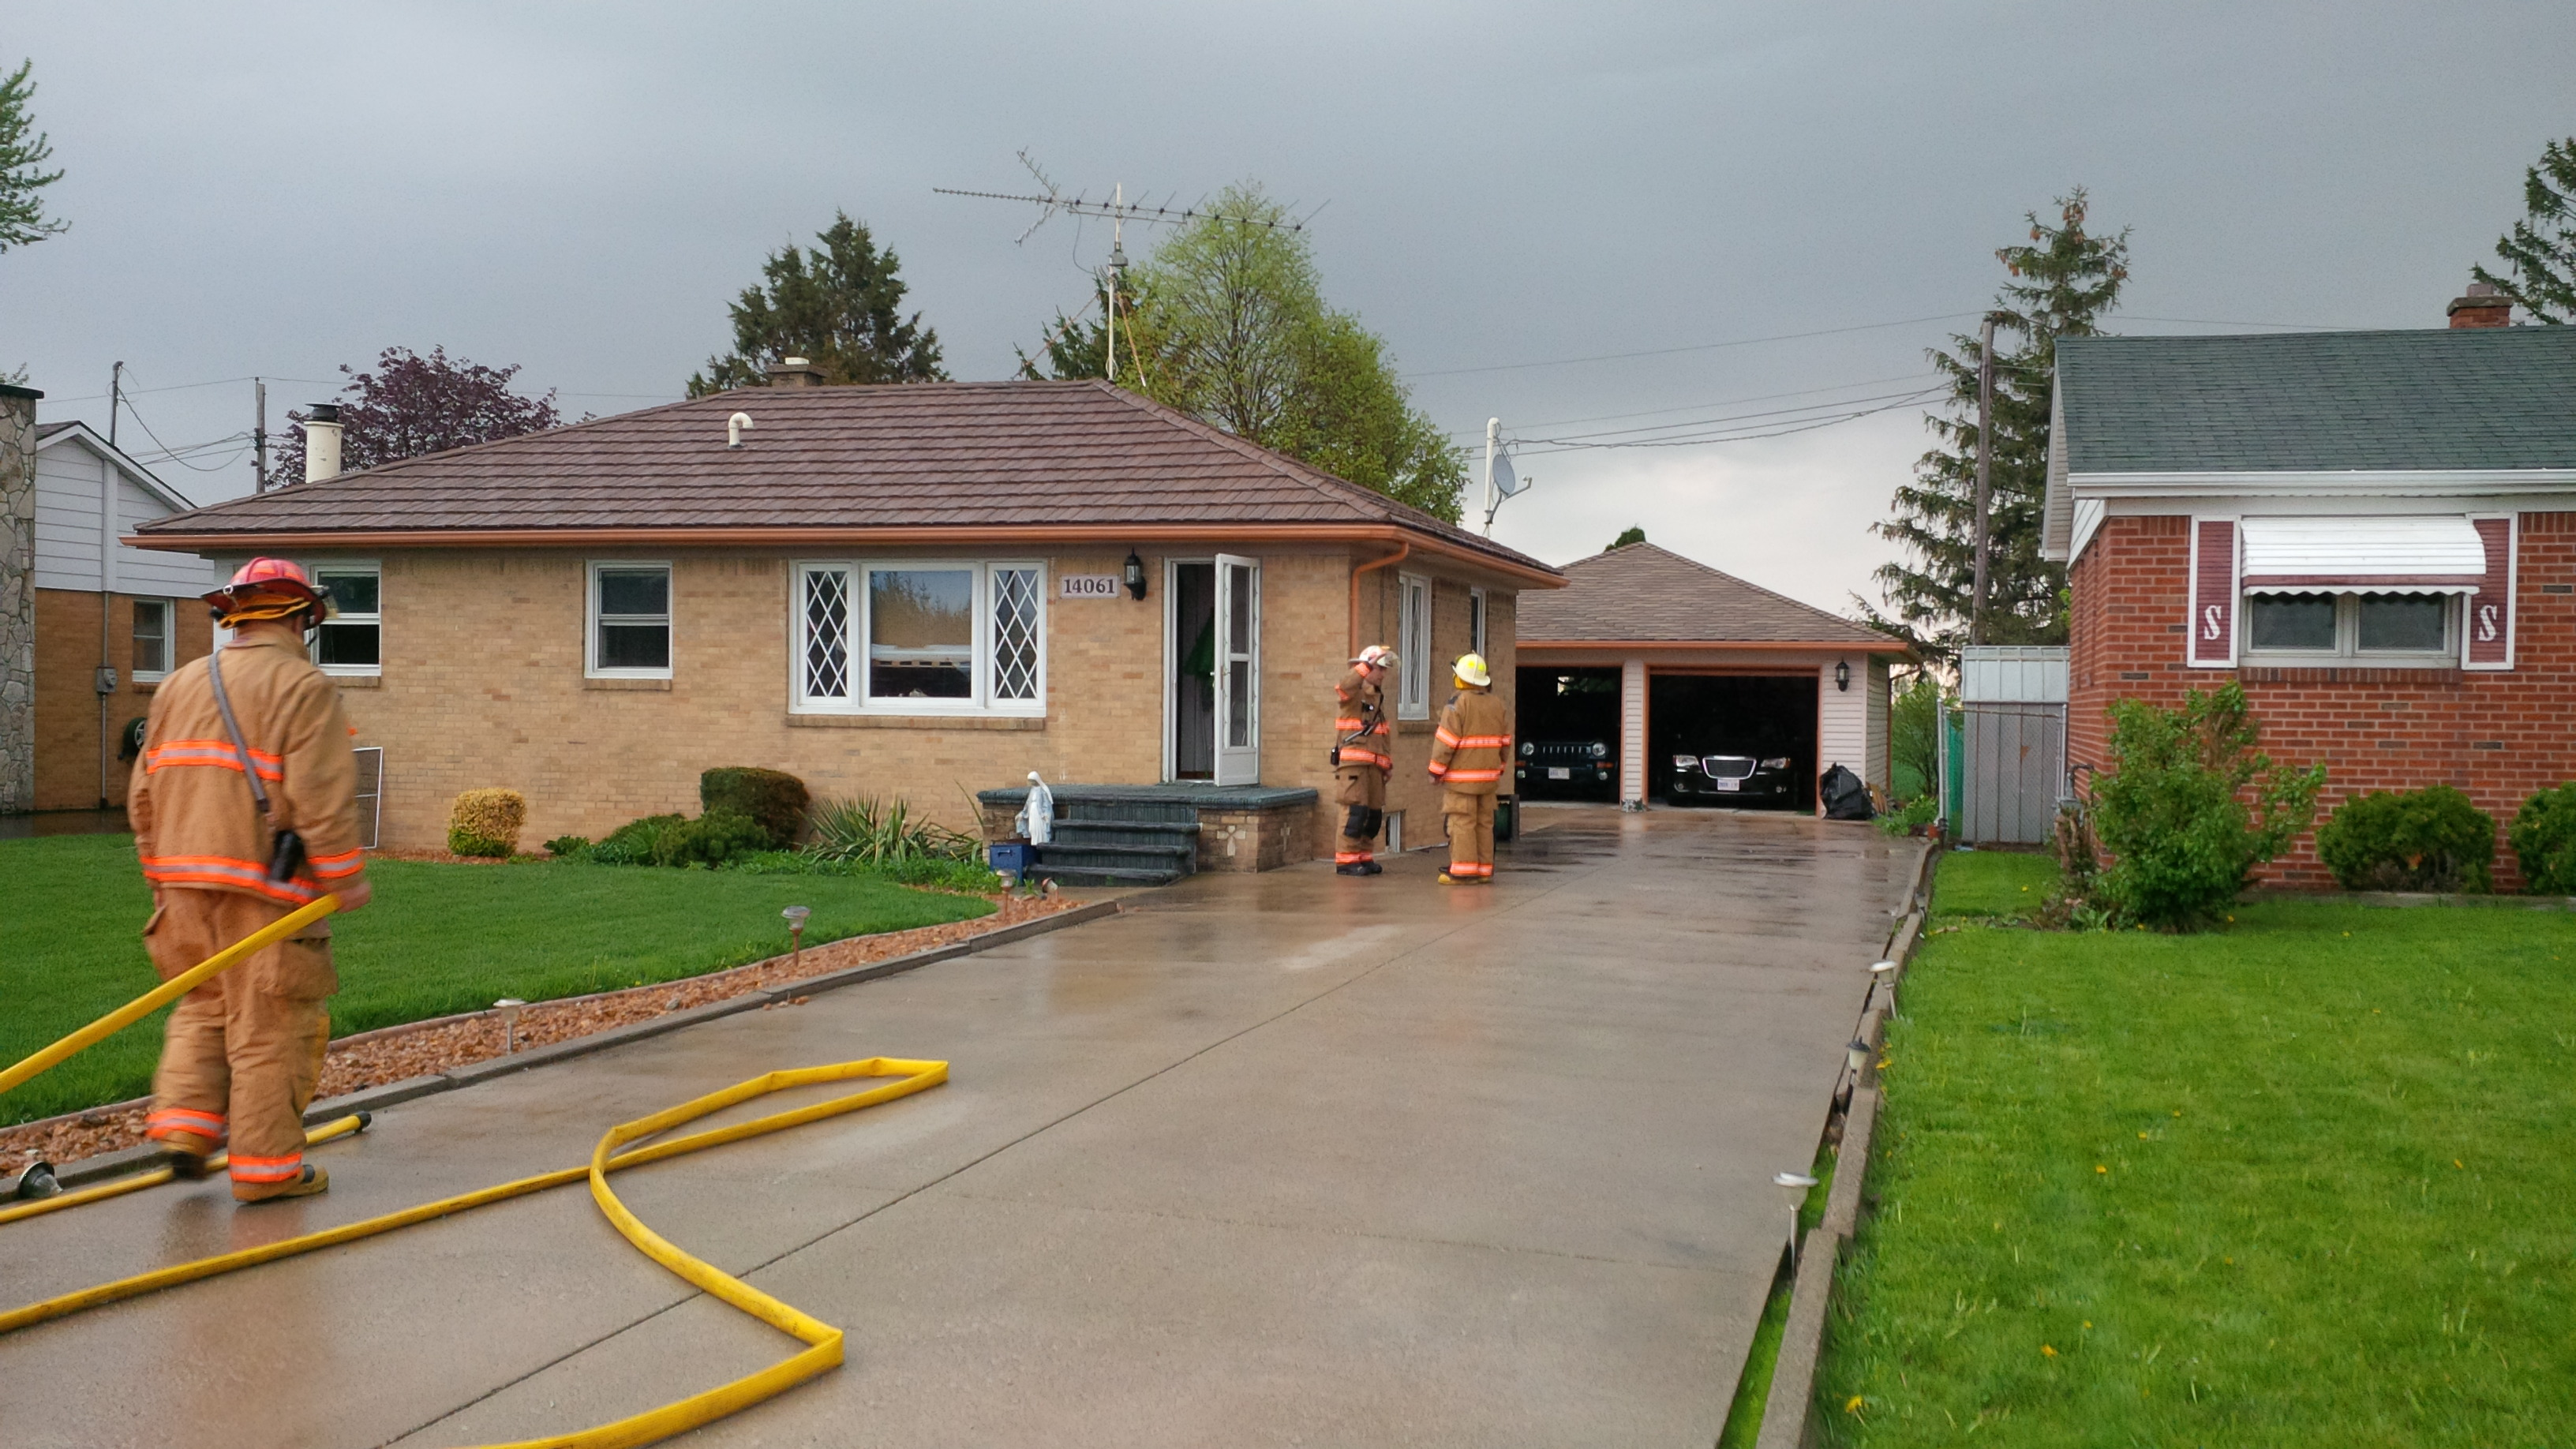 Essex fire crews responding to a fire at 14061 Walker Rd. on May 12, 2014. (Photo by Ricardo Veneza)